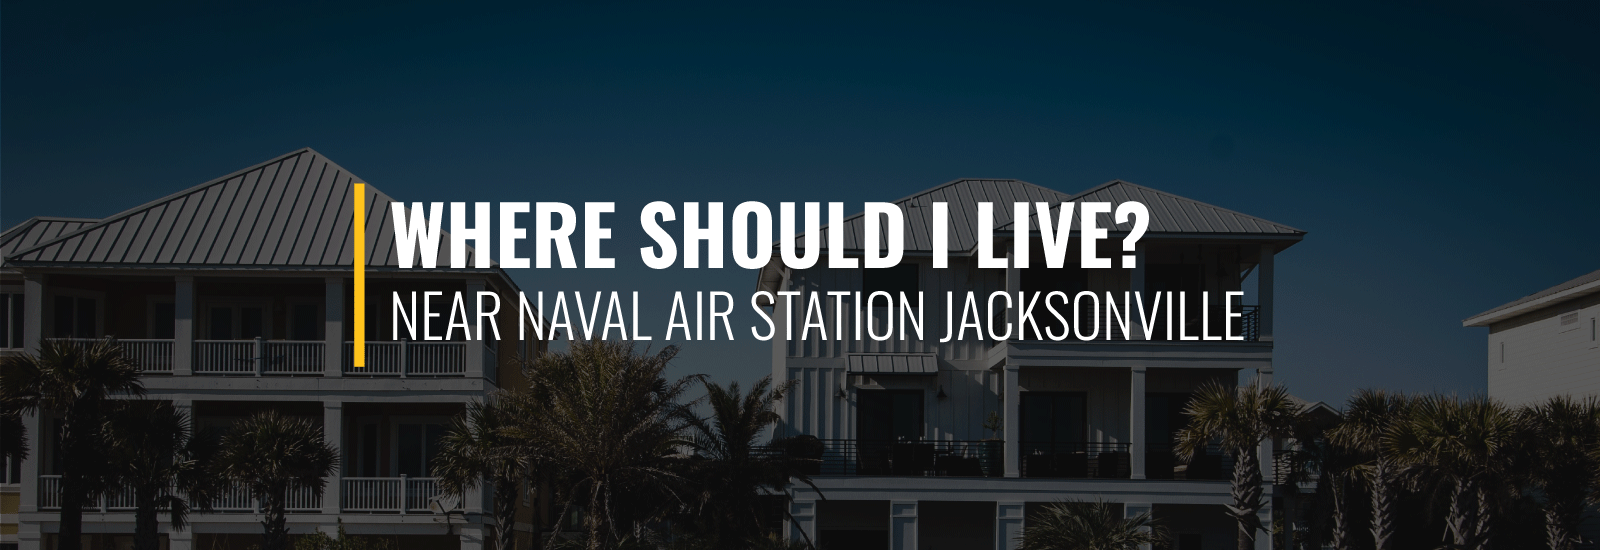 Where Should I Live Near Naval Air Station Jacksonville?